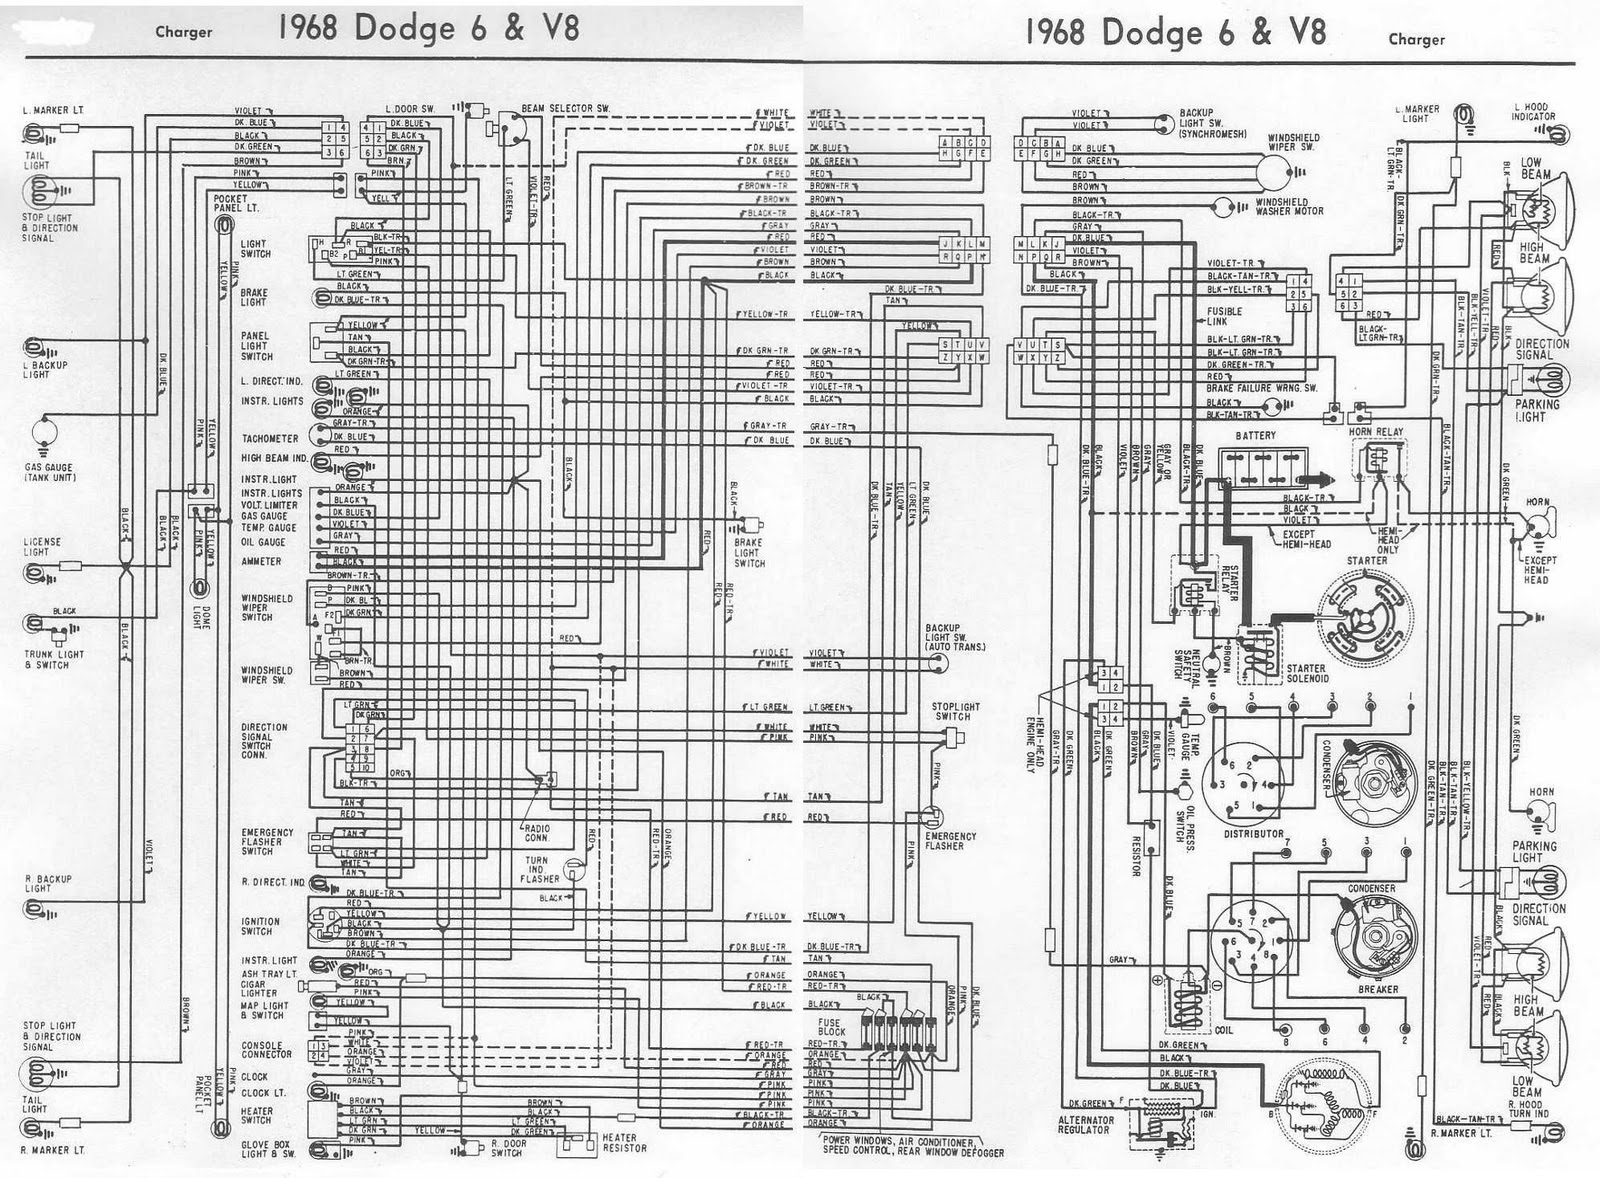 1970 Dodge Challenger Ignition Wiring Diagram 1974 Charger Diagrams Free Download